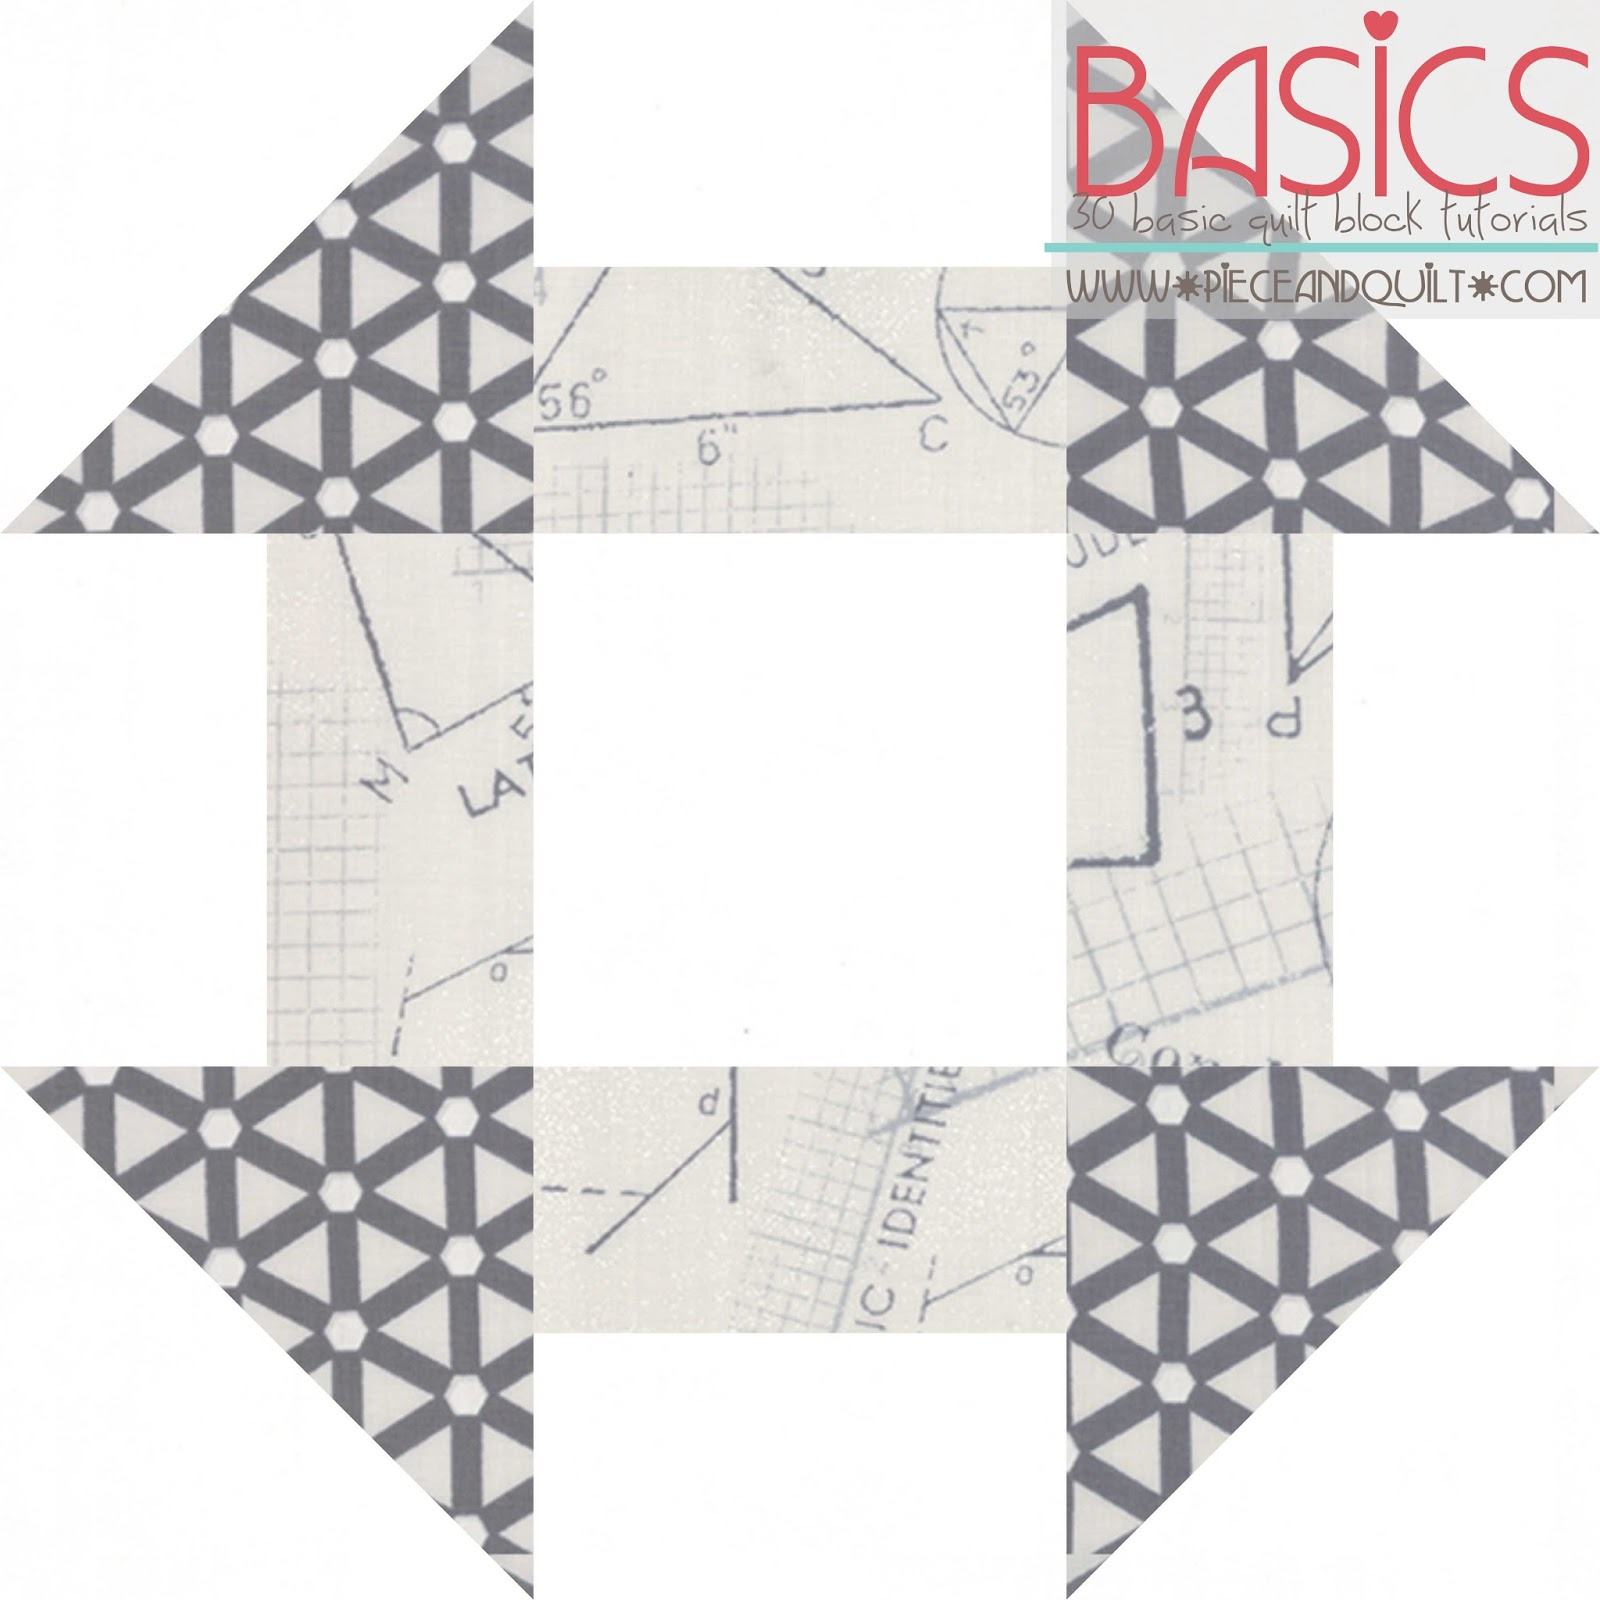 Piece N Quilt: How to: Churndash Quilt Block - Basics Quilt Block ... : churn dash quilt block - Adamdwight.com